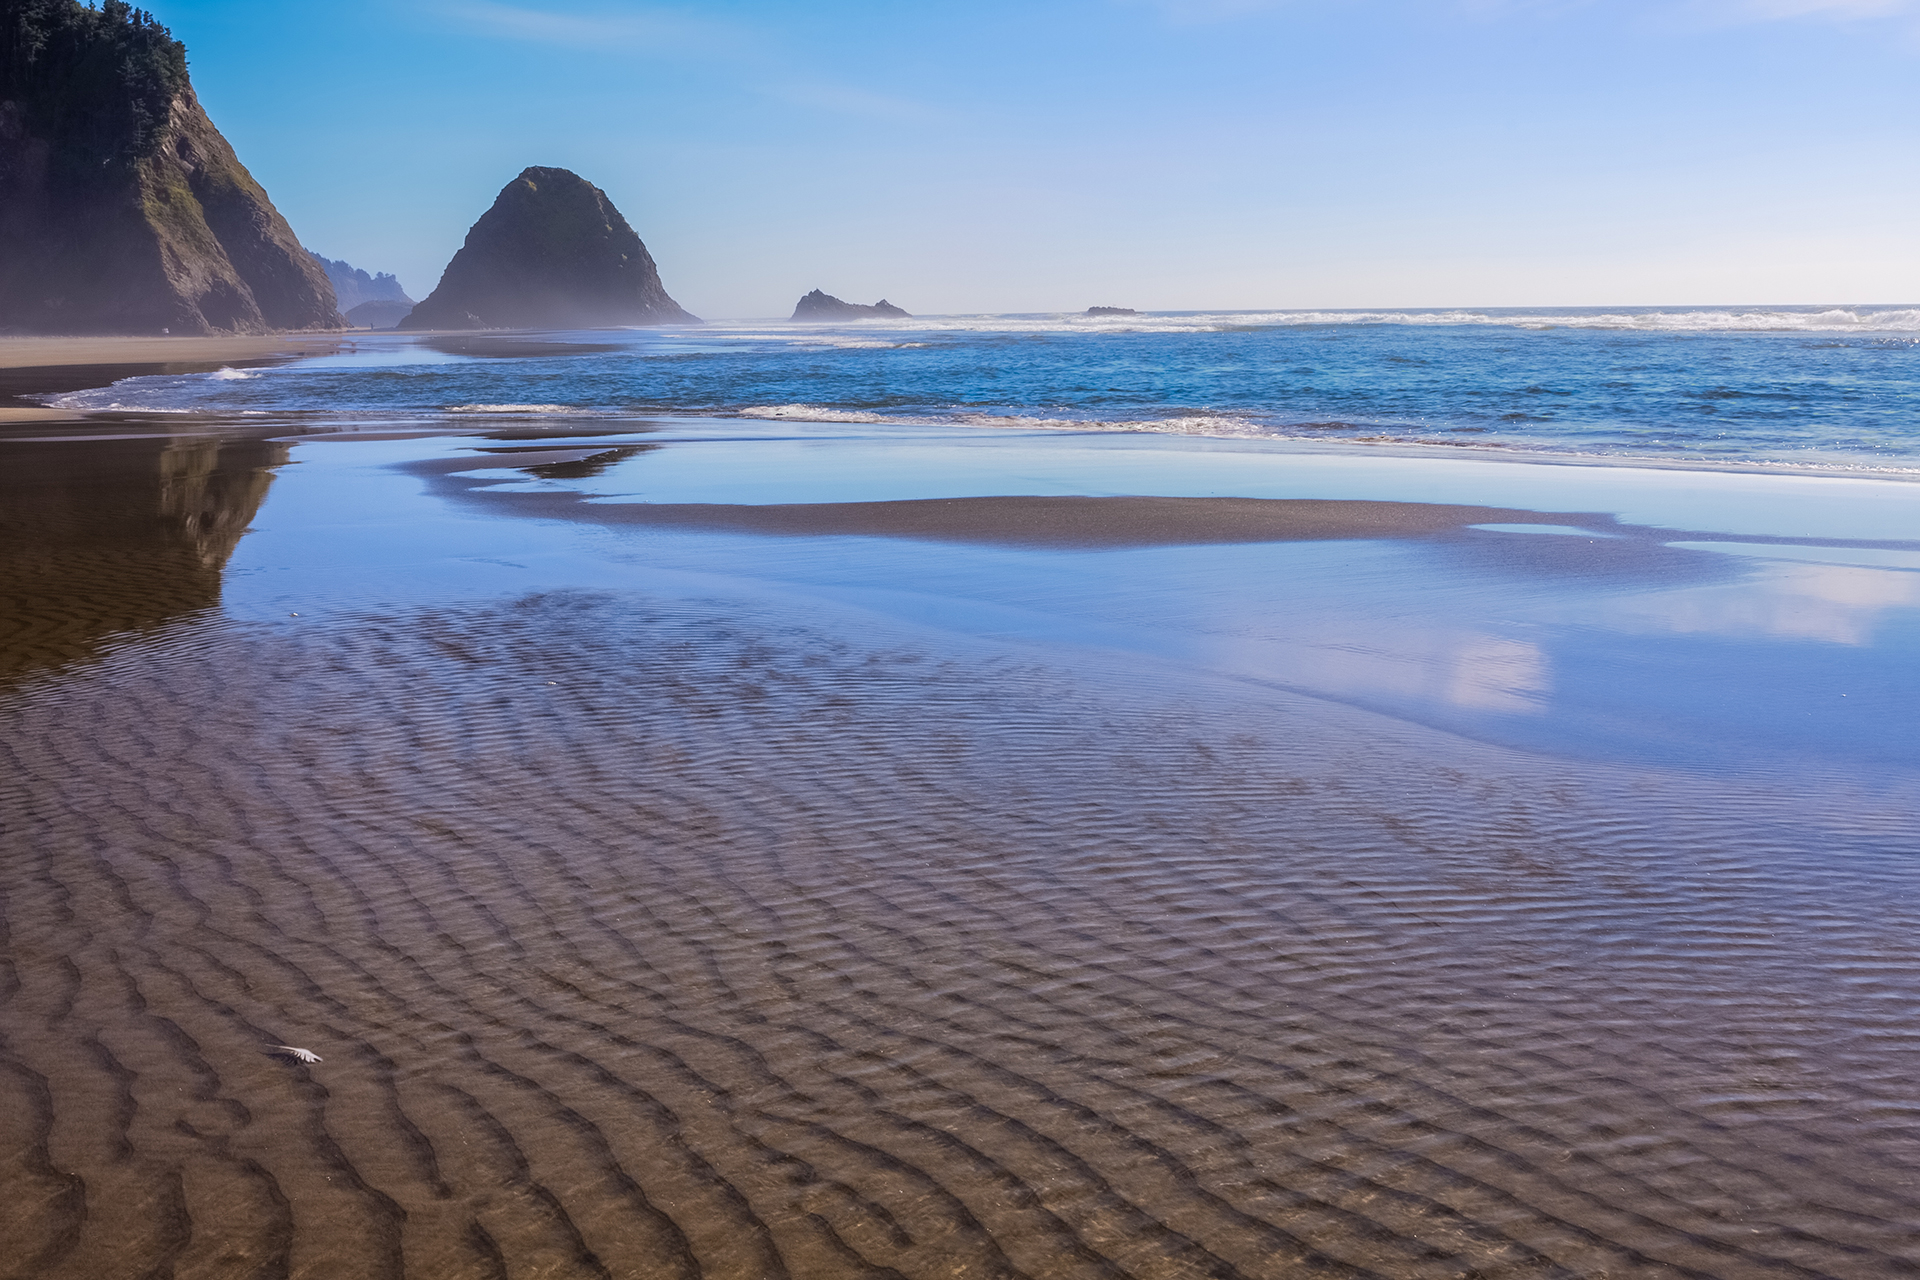 The Left Coast And Pacific Ocean Offer Families Several West Beach Vacation Ideas California May Have Warmer Al Options But Oregon